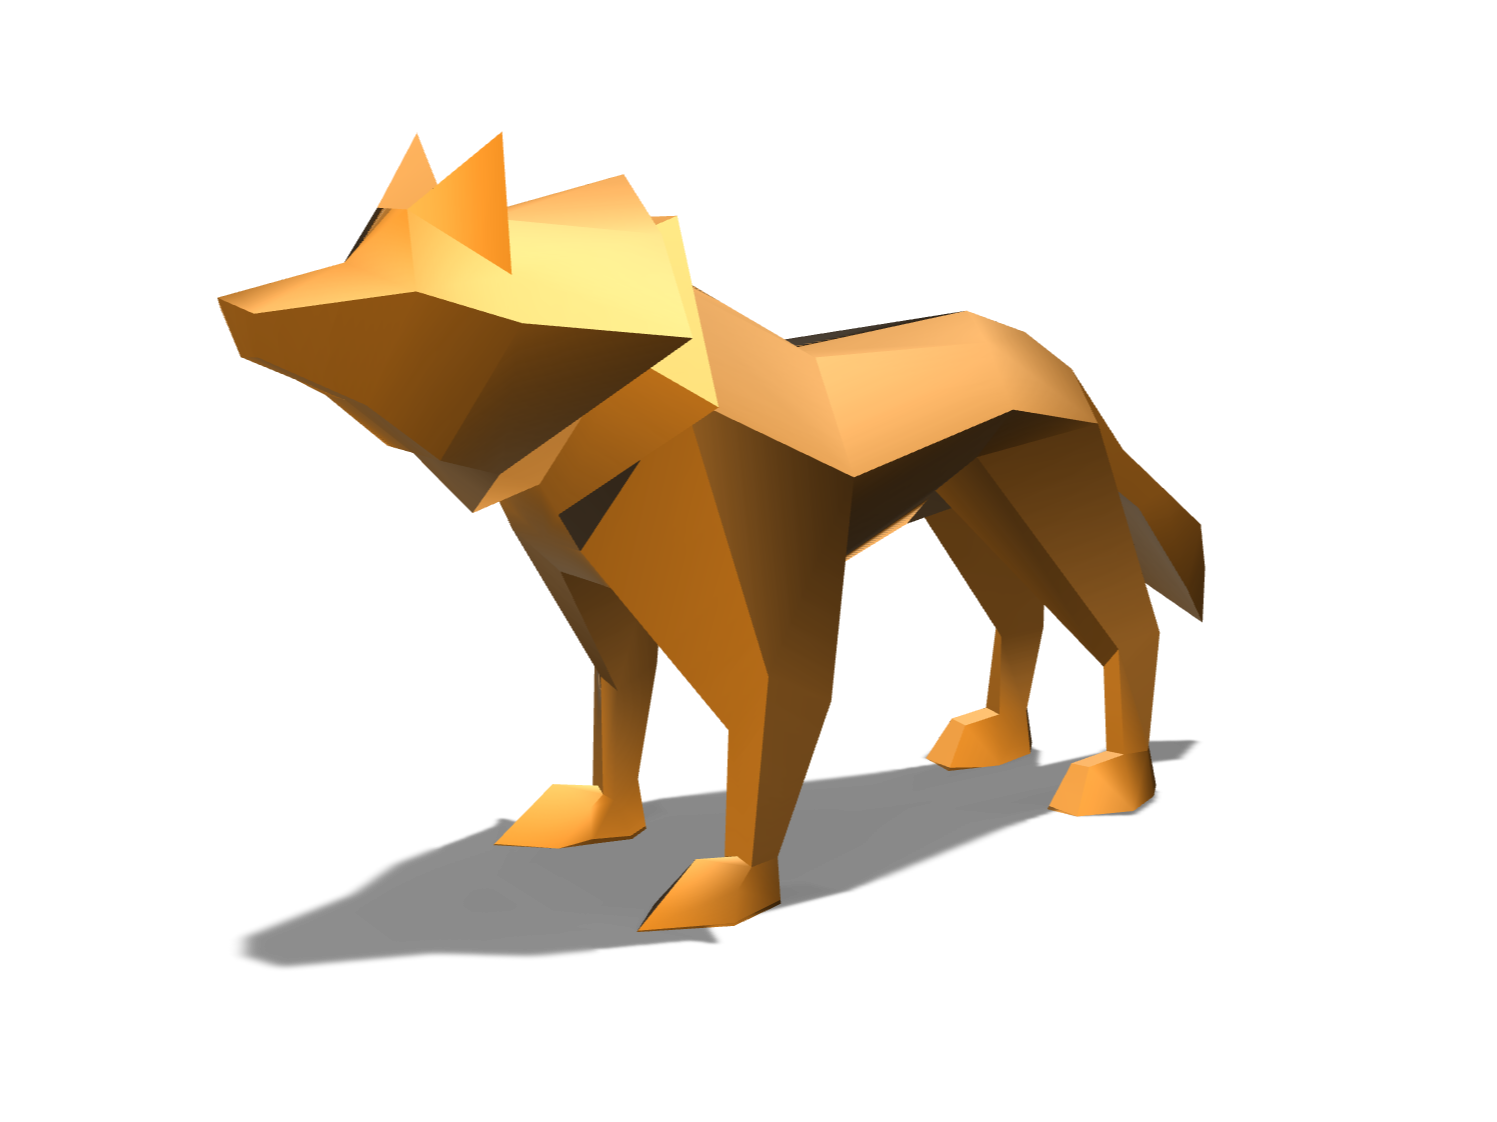 Low poly wolf - 3D design by Youri Lepointe Dec 11, 2017